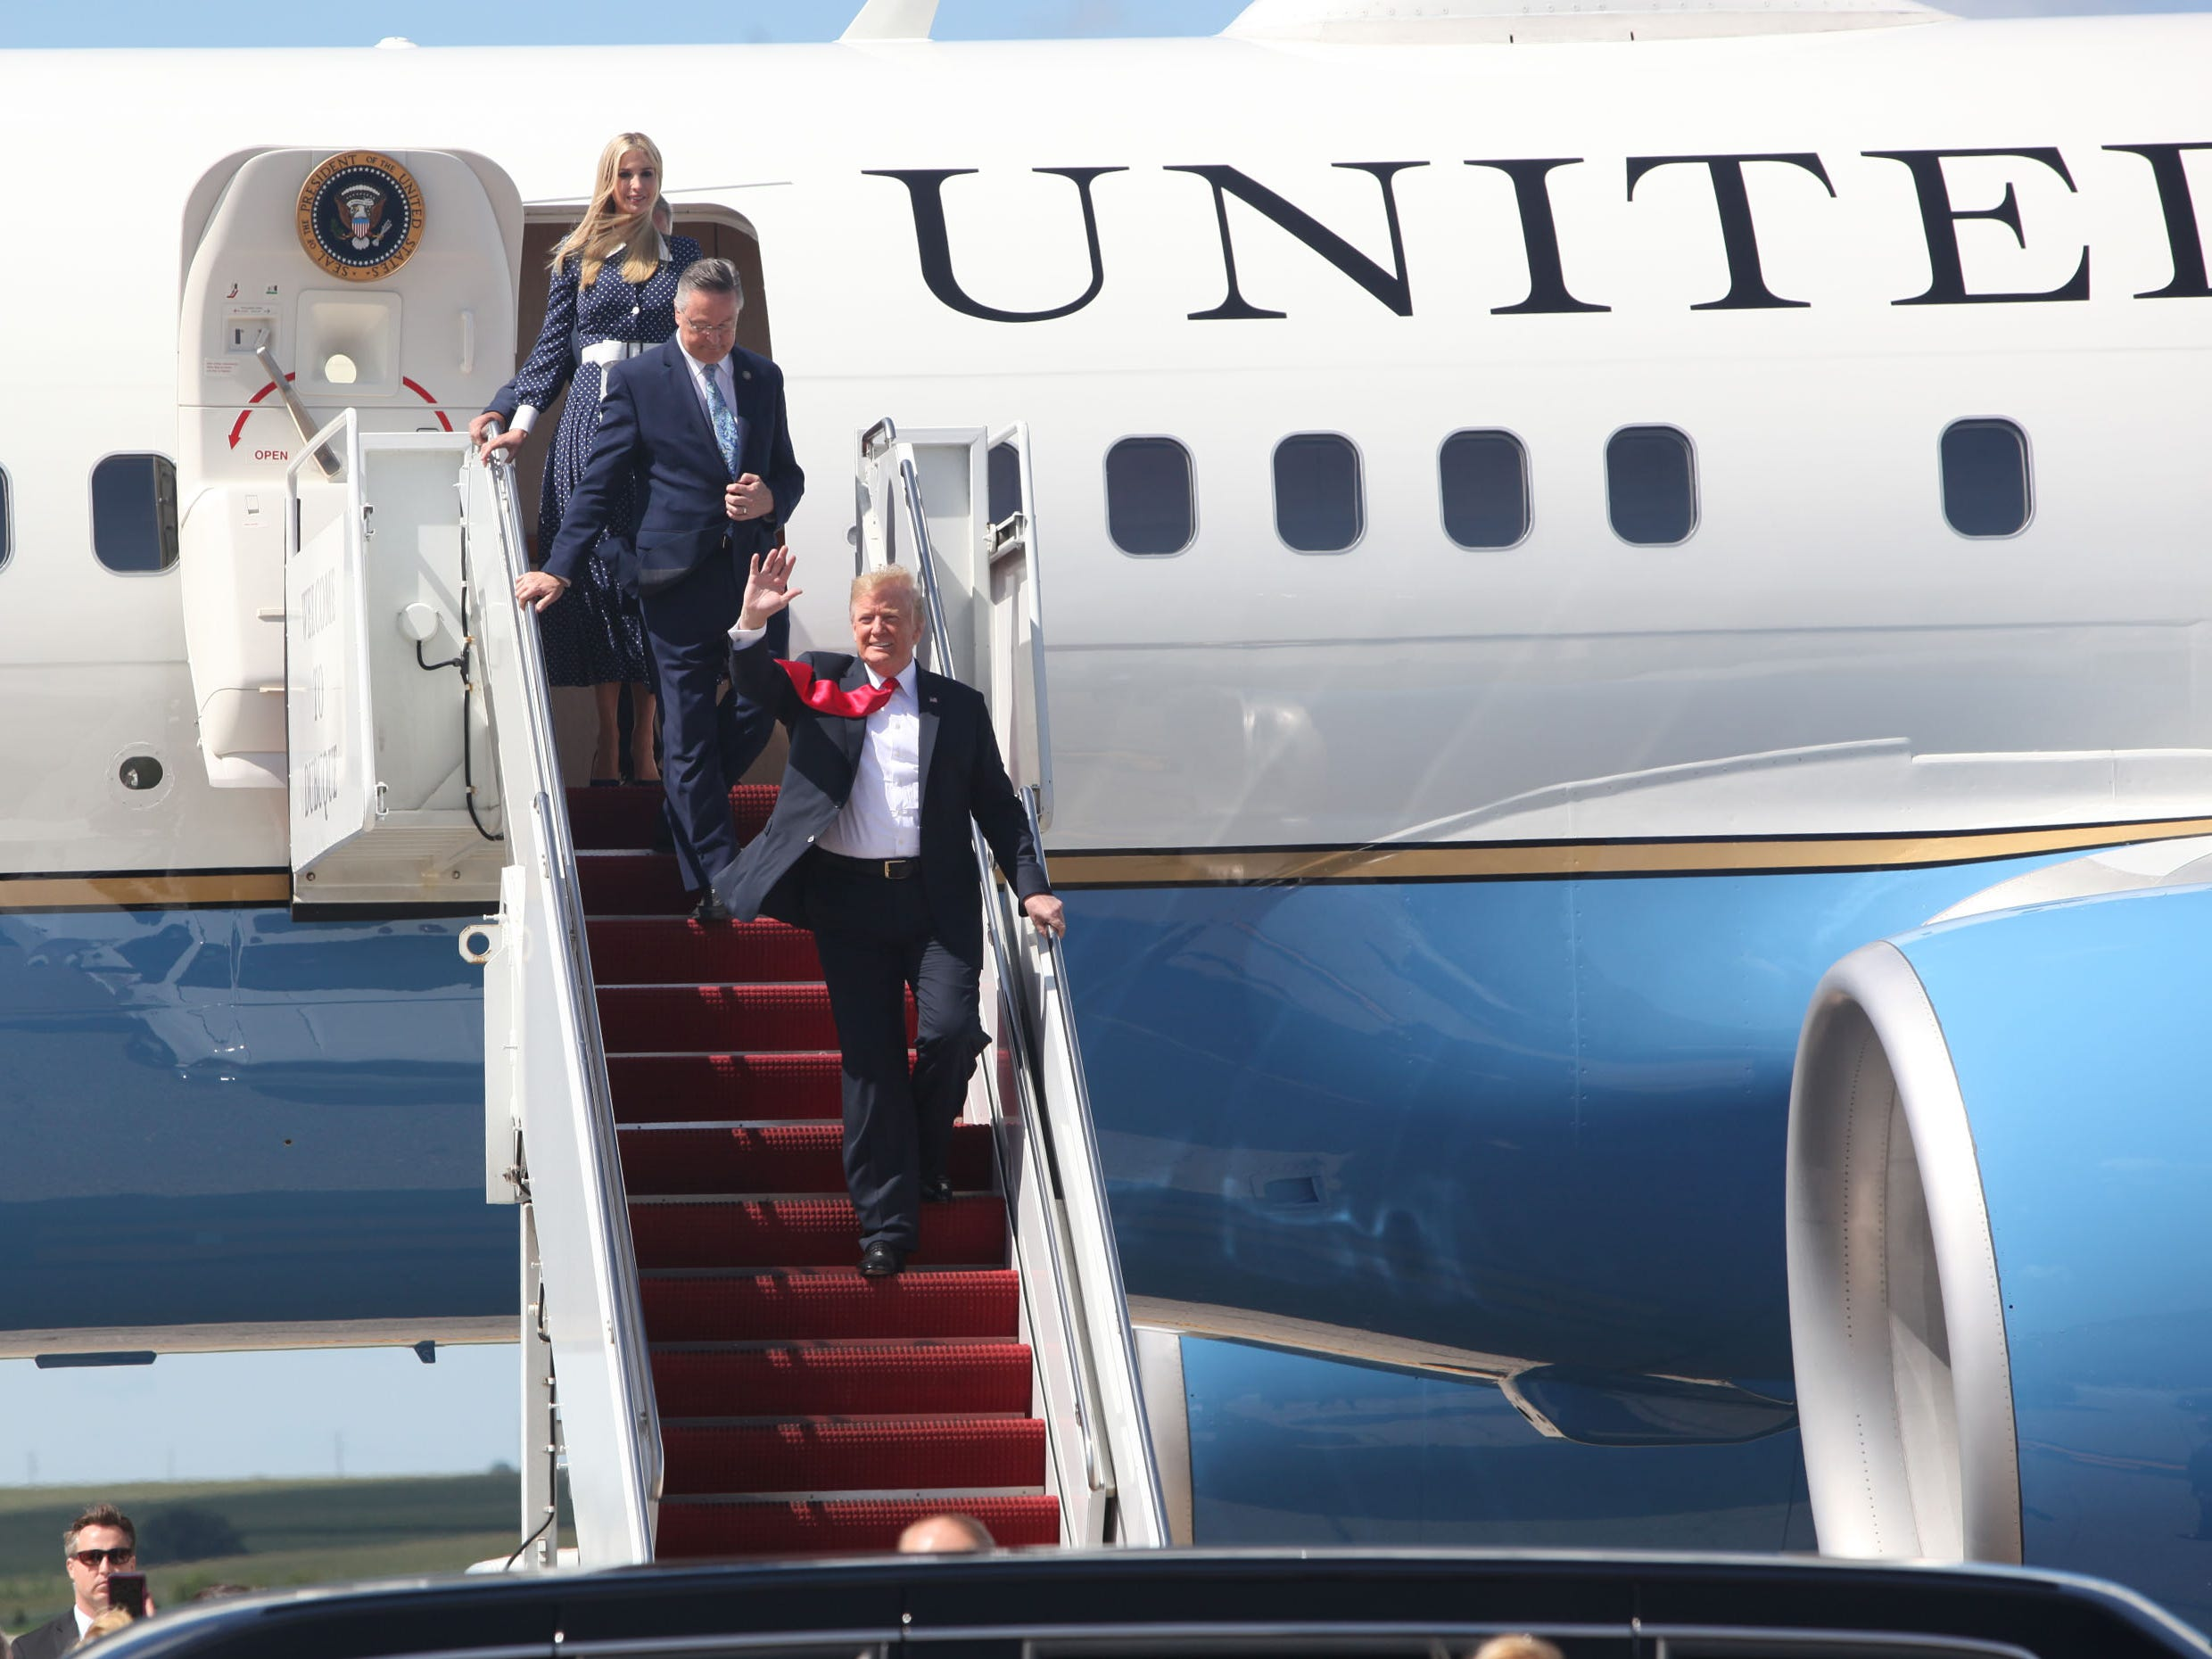 President Donald Trump exits Airforce One followed by Congressman Rod Blum, R-Dubuque, and his daughter Ivanka Trump at Dubuque Regional Airport in Dubuque, IA on Thursday morning, July 26, 2018. Trump was in the state to participate in a roundtable discussion about workforce development at Northeast Iowa Community College in Peosta, Iowa.